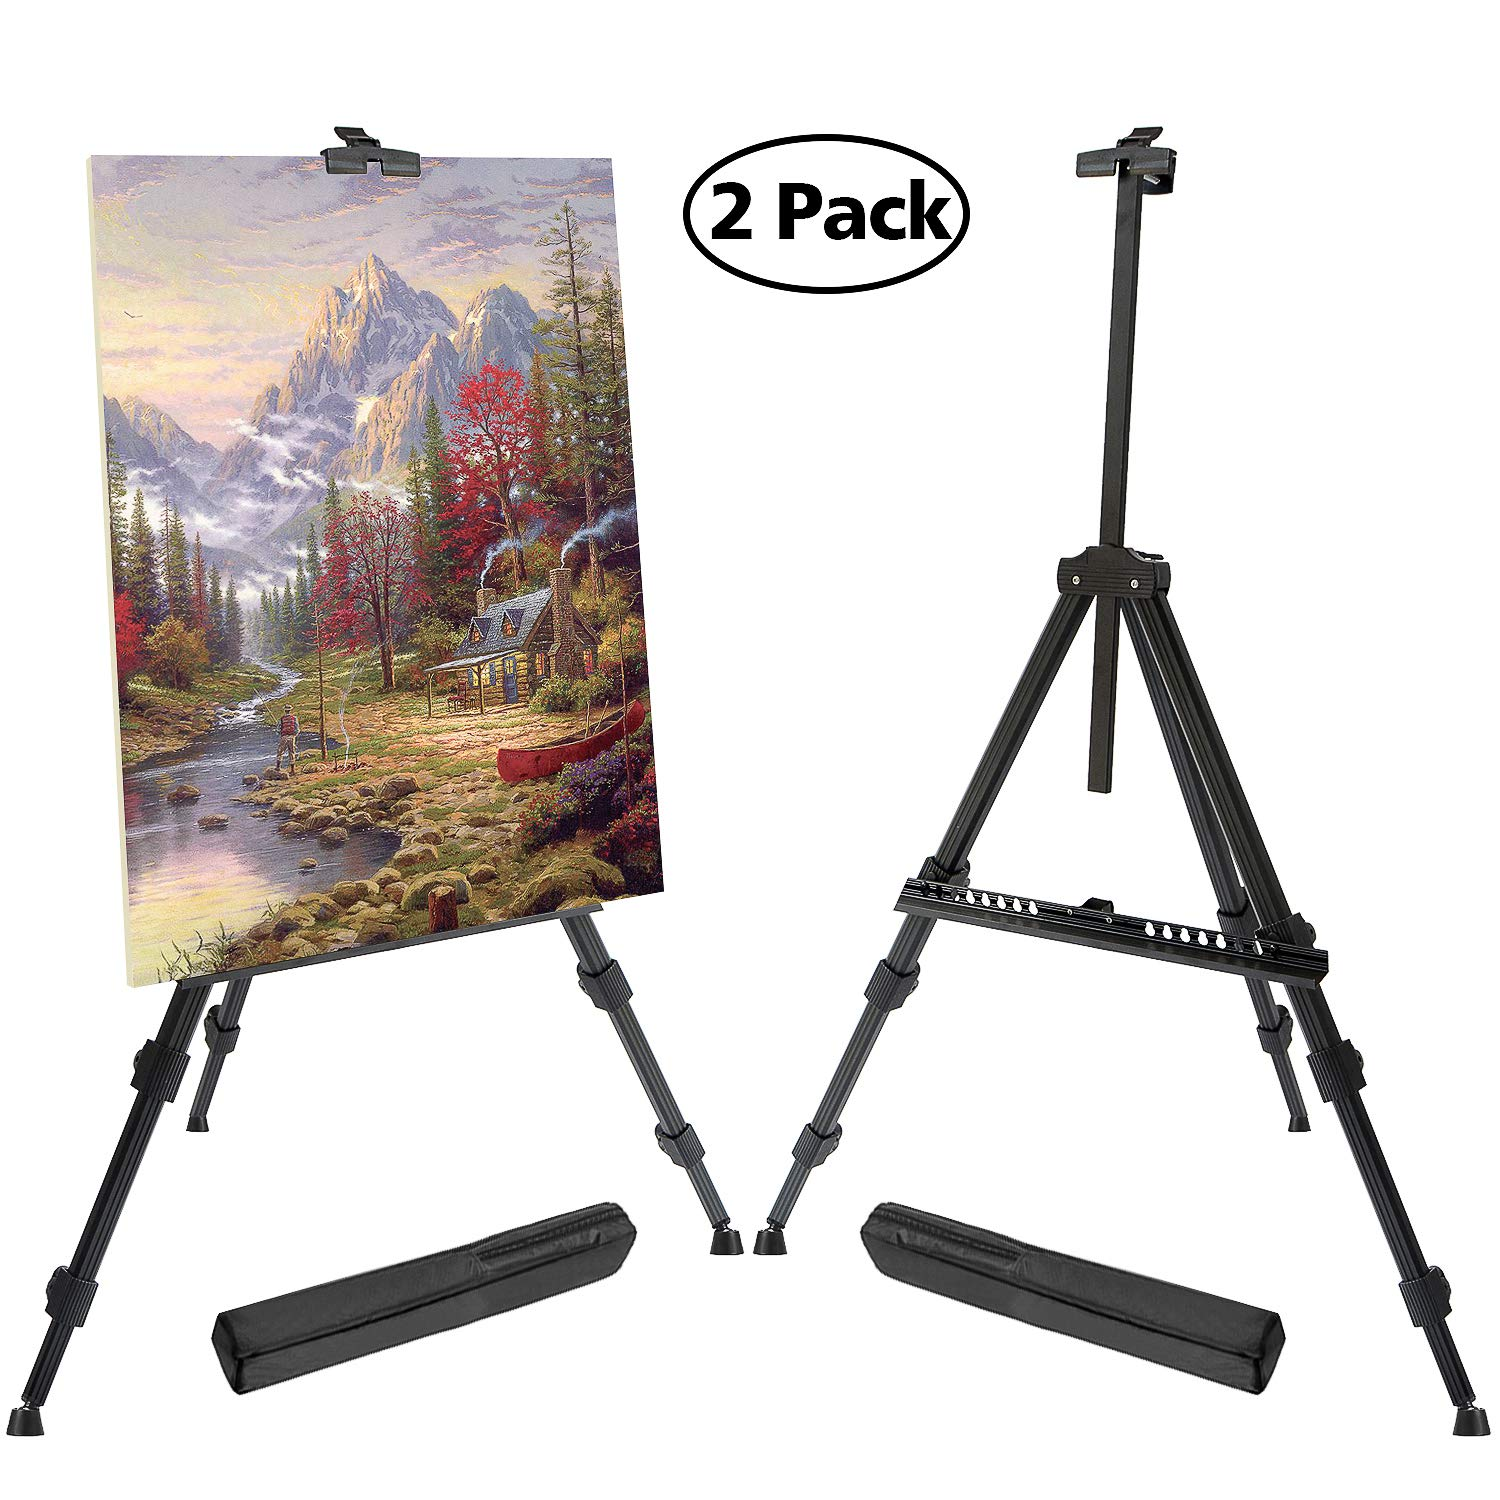 T-Sign 72'' Tall Display Easel Stand, Aluminum Metal Tripod Art Easel Adjustable Height from 22-72'', Extra Sturdy for Table-Top/Floor Painting, Drawing and Display with Bag, 2-Pack Black